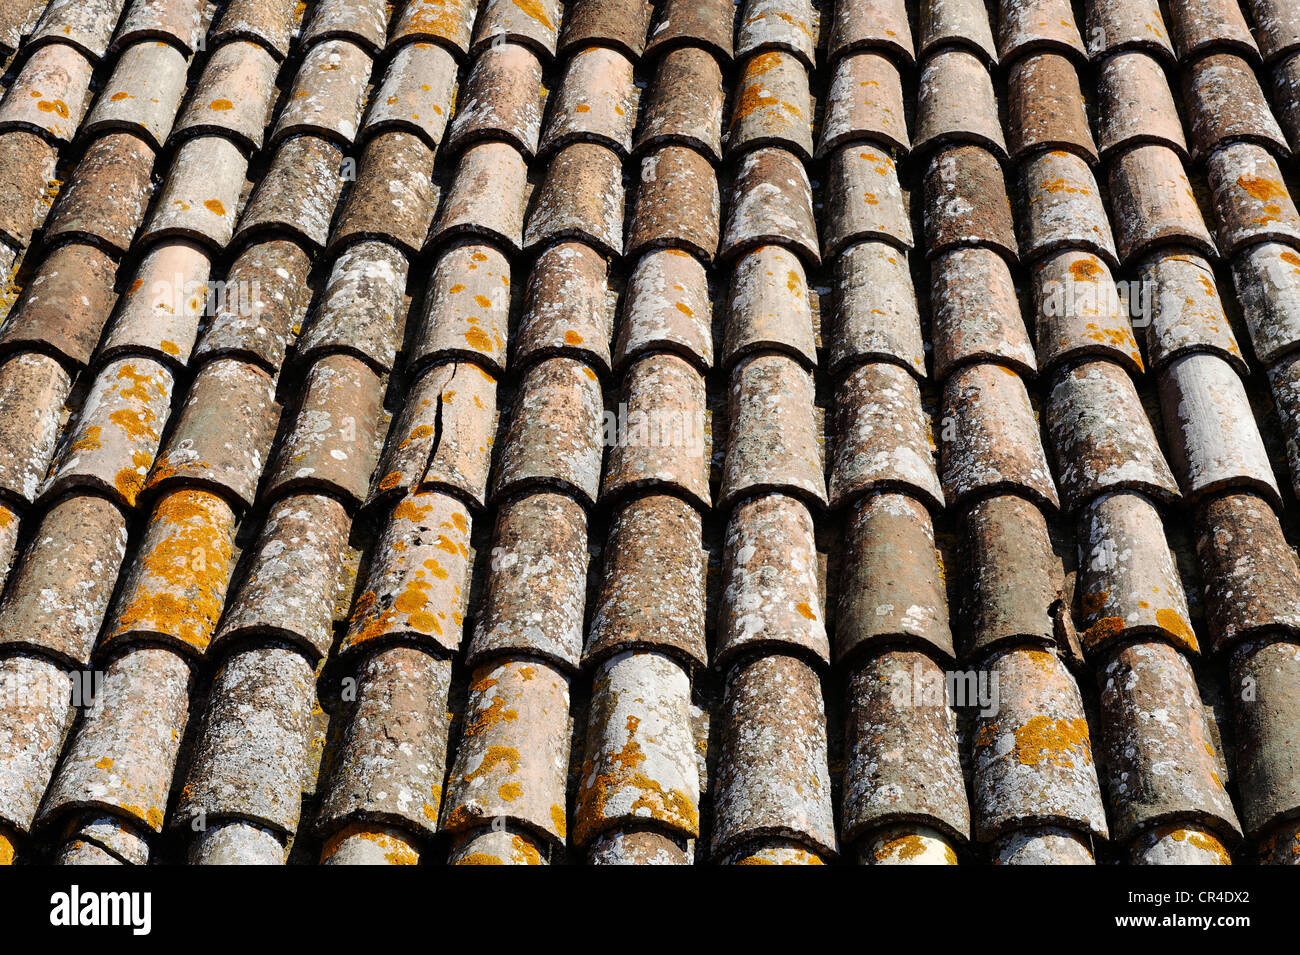 Terracotta tiled roof, Gradara, Province of Pesaro and Urbino, Marche, Italy, Europe - Stock Image